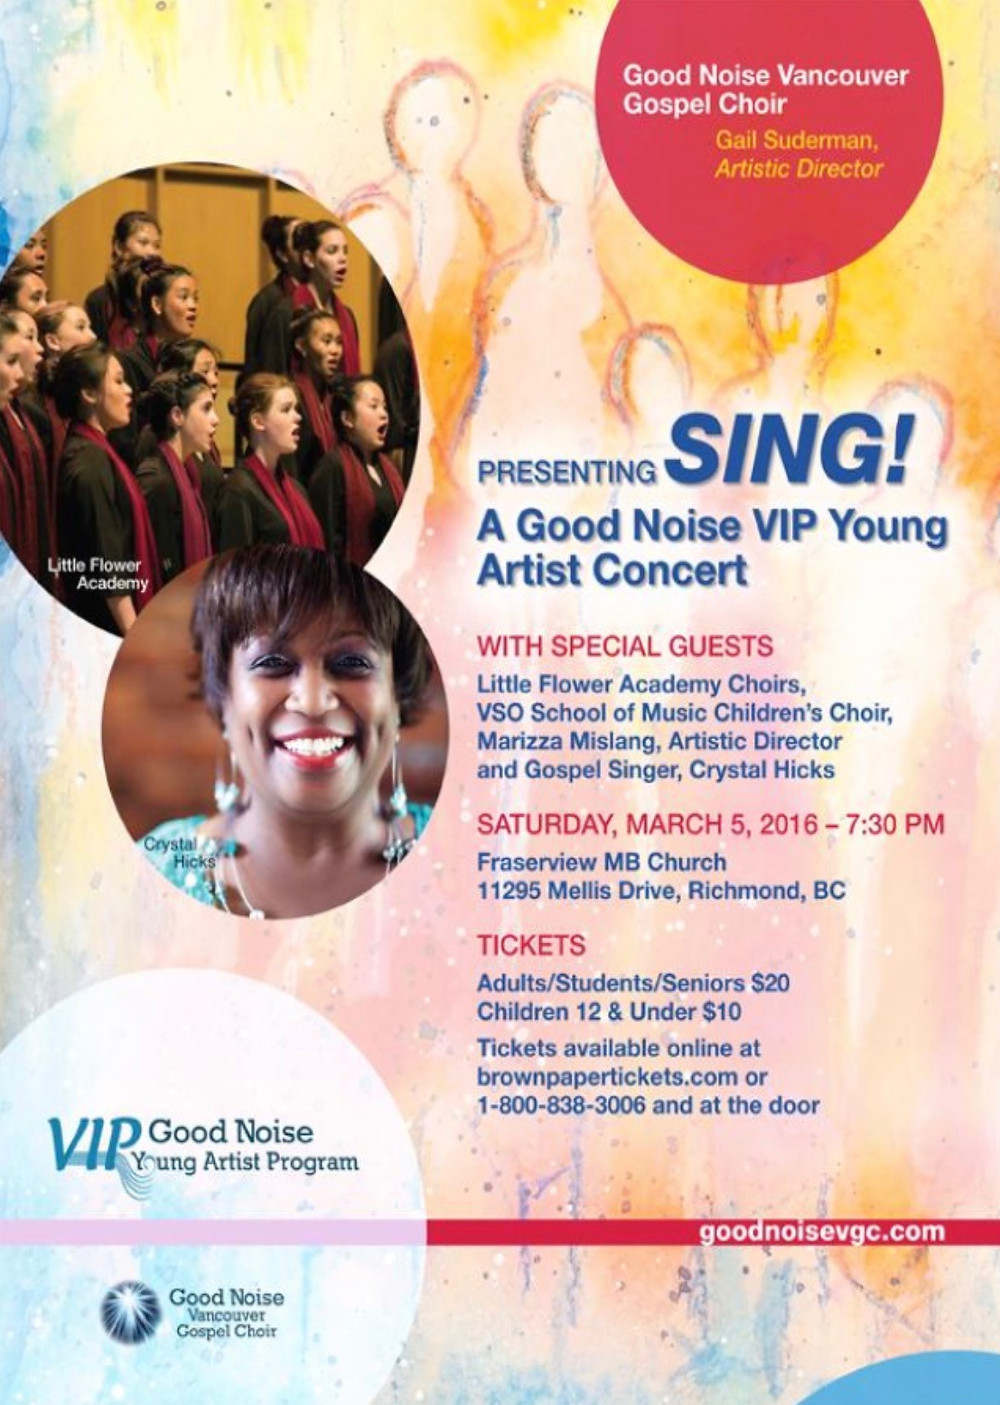 Sing! A Good Noise VIP Young Artist Concert